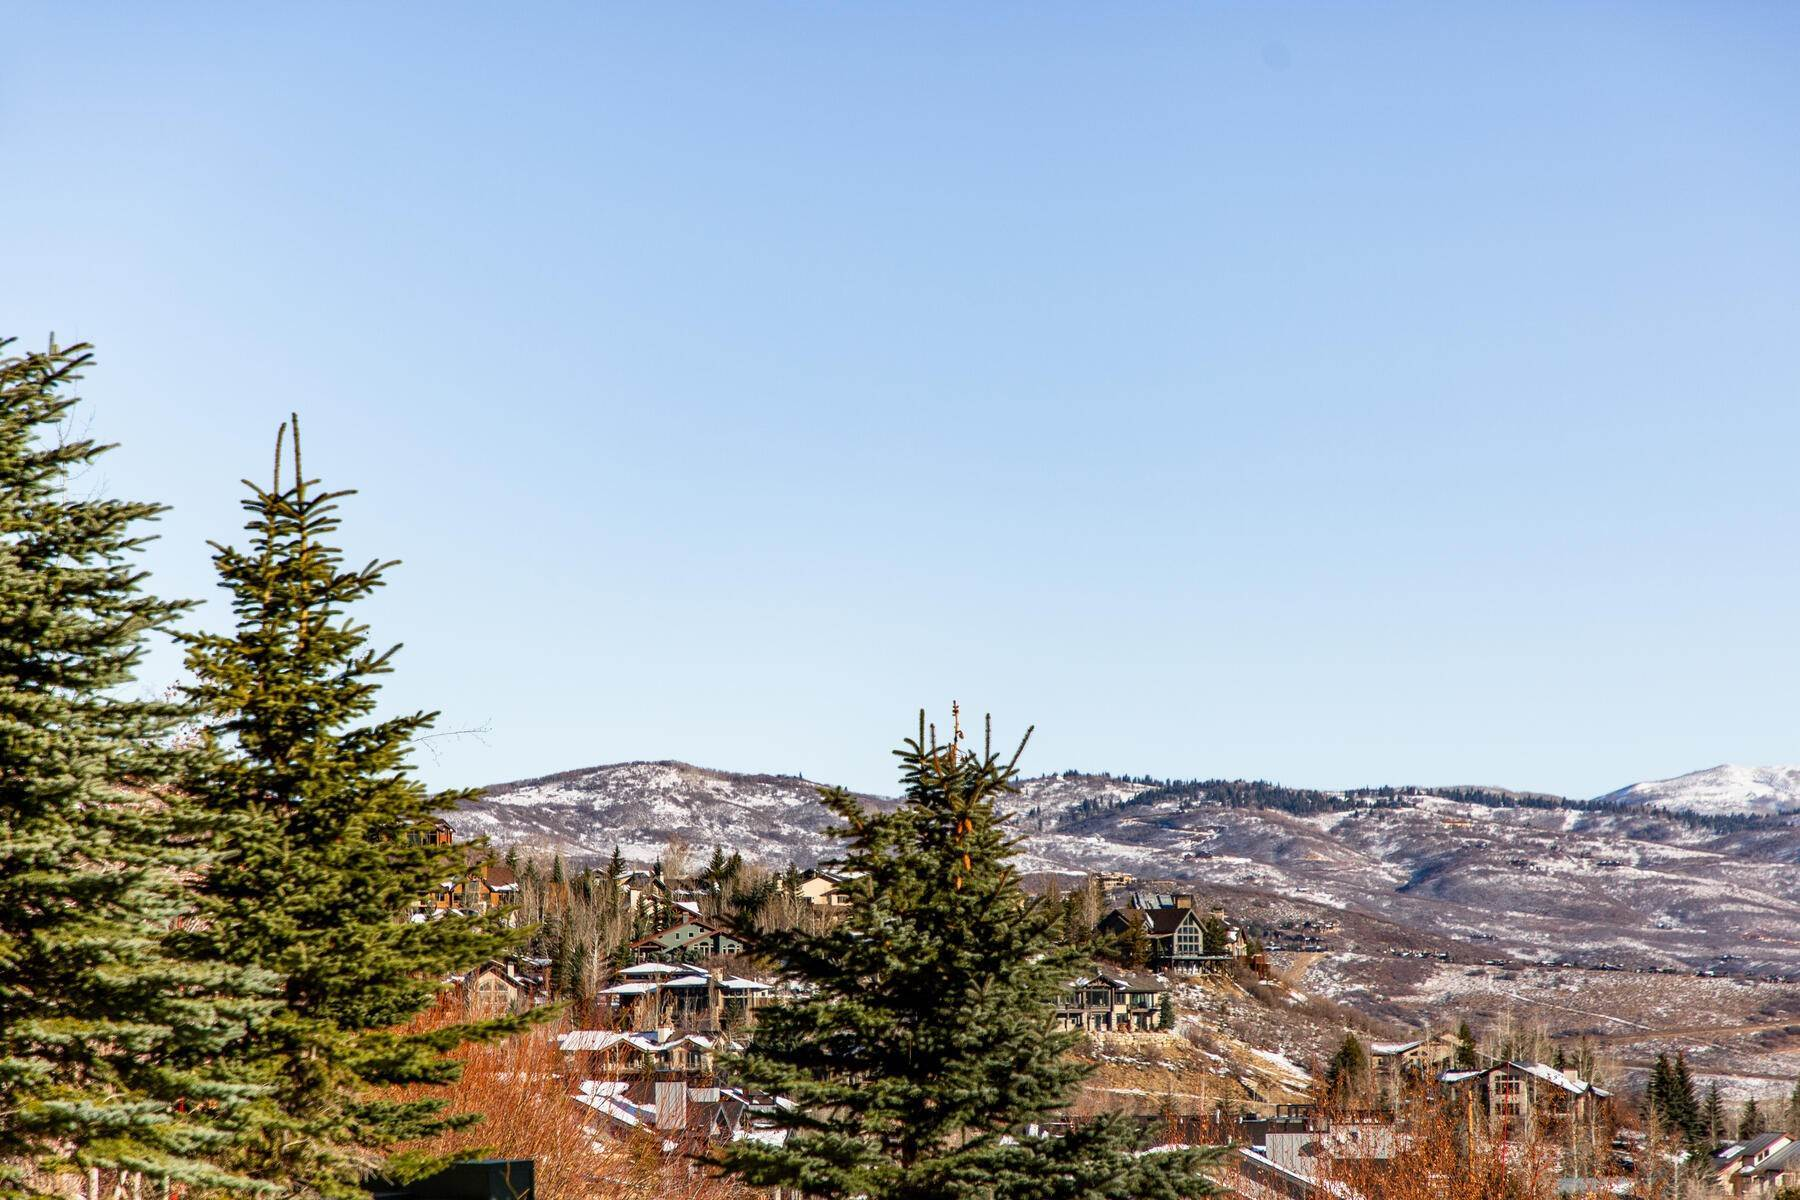 19. Condominiums for Sale at Introducing Park City's Newest Boutique Ski Hotel, The Ascent Park City! 4080 N Cooper Lane #232 Park City, Utah 84098 United States